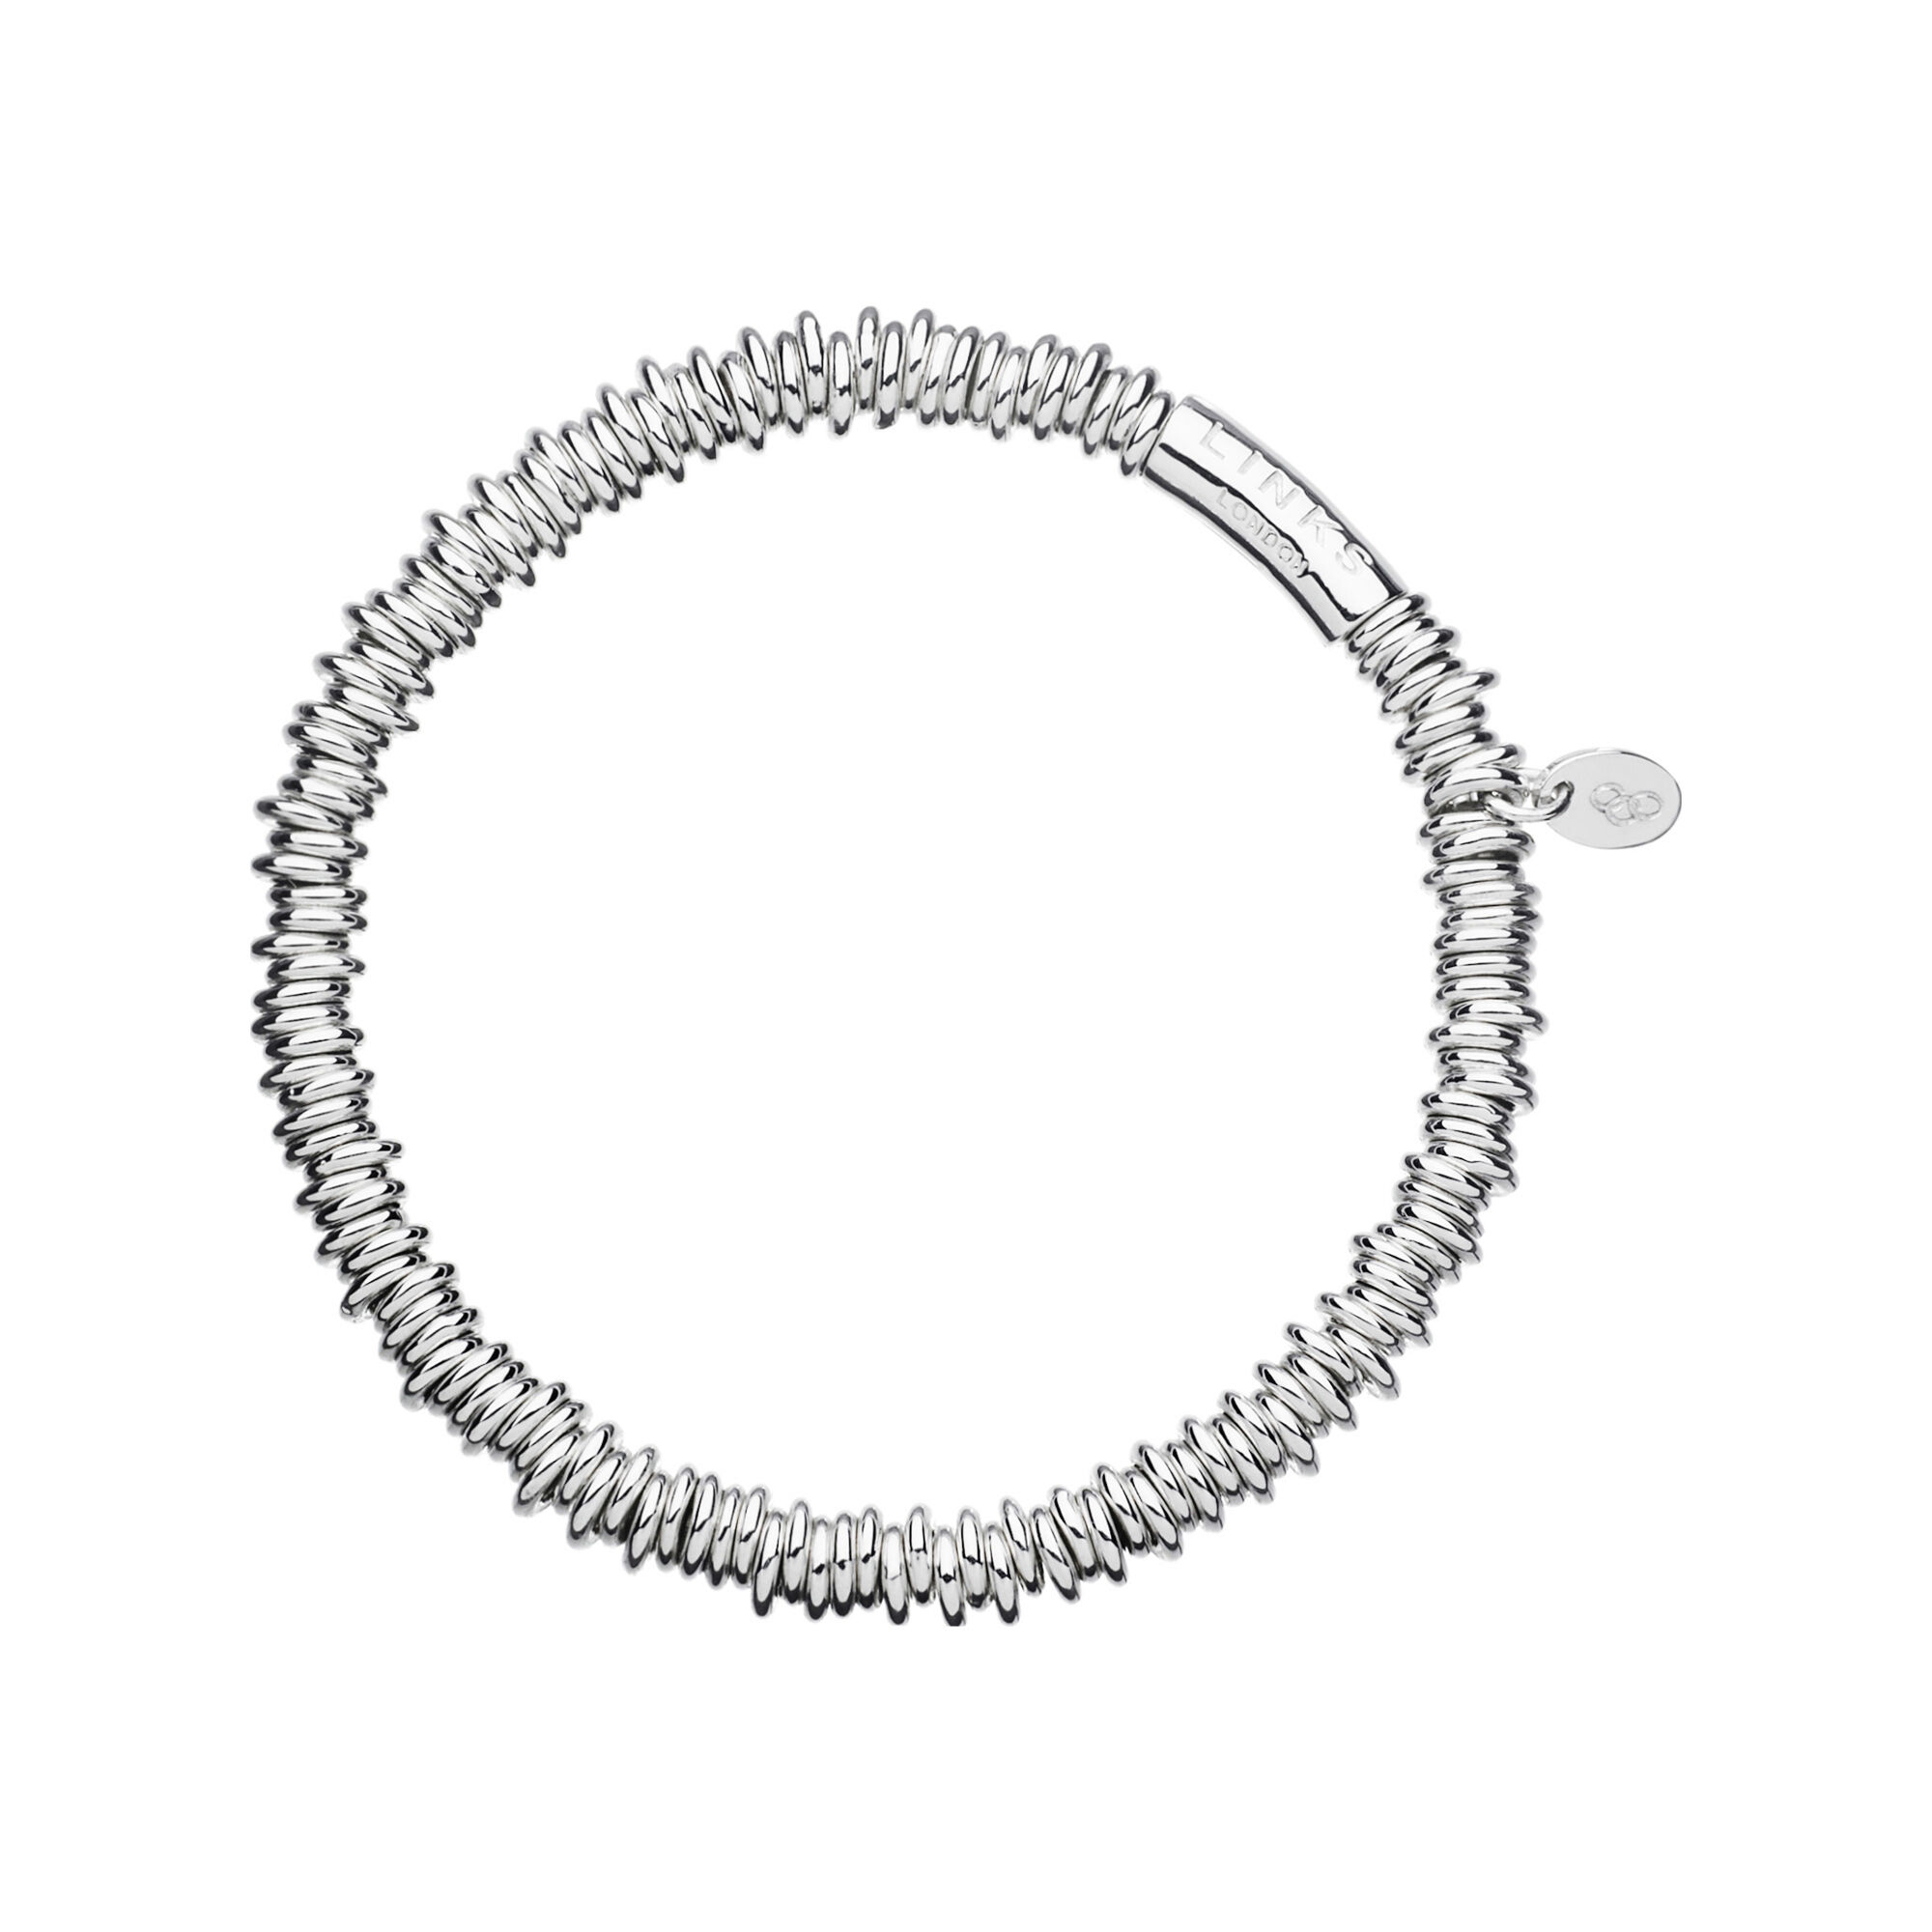 circle rod tiny interlinking bracelet small silver bangle oliver bonas bangles and bracelets jewellery